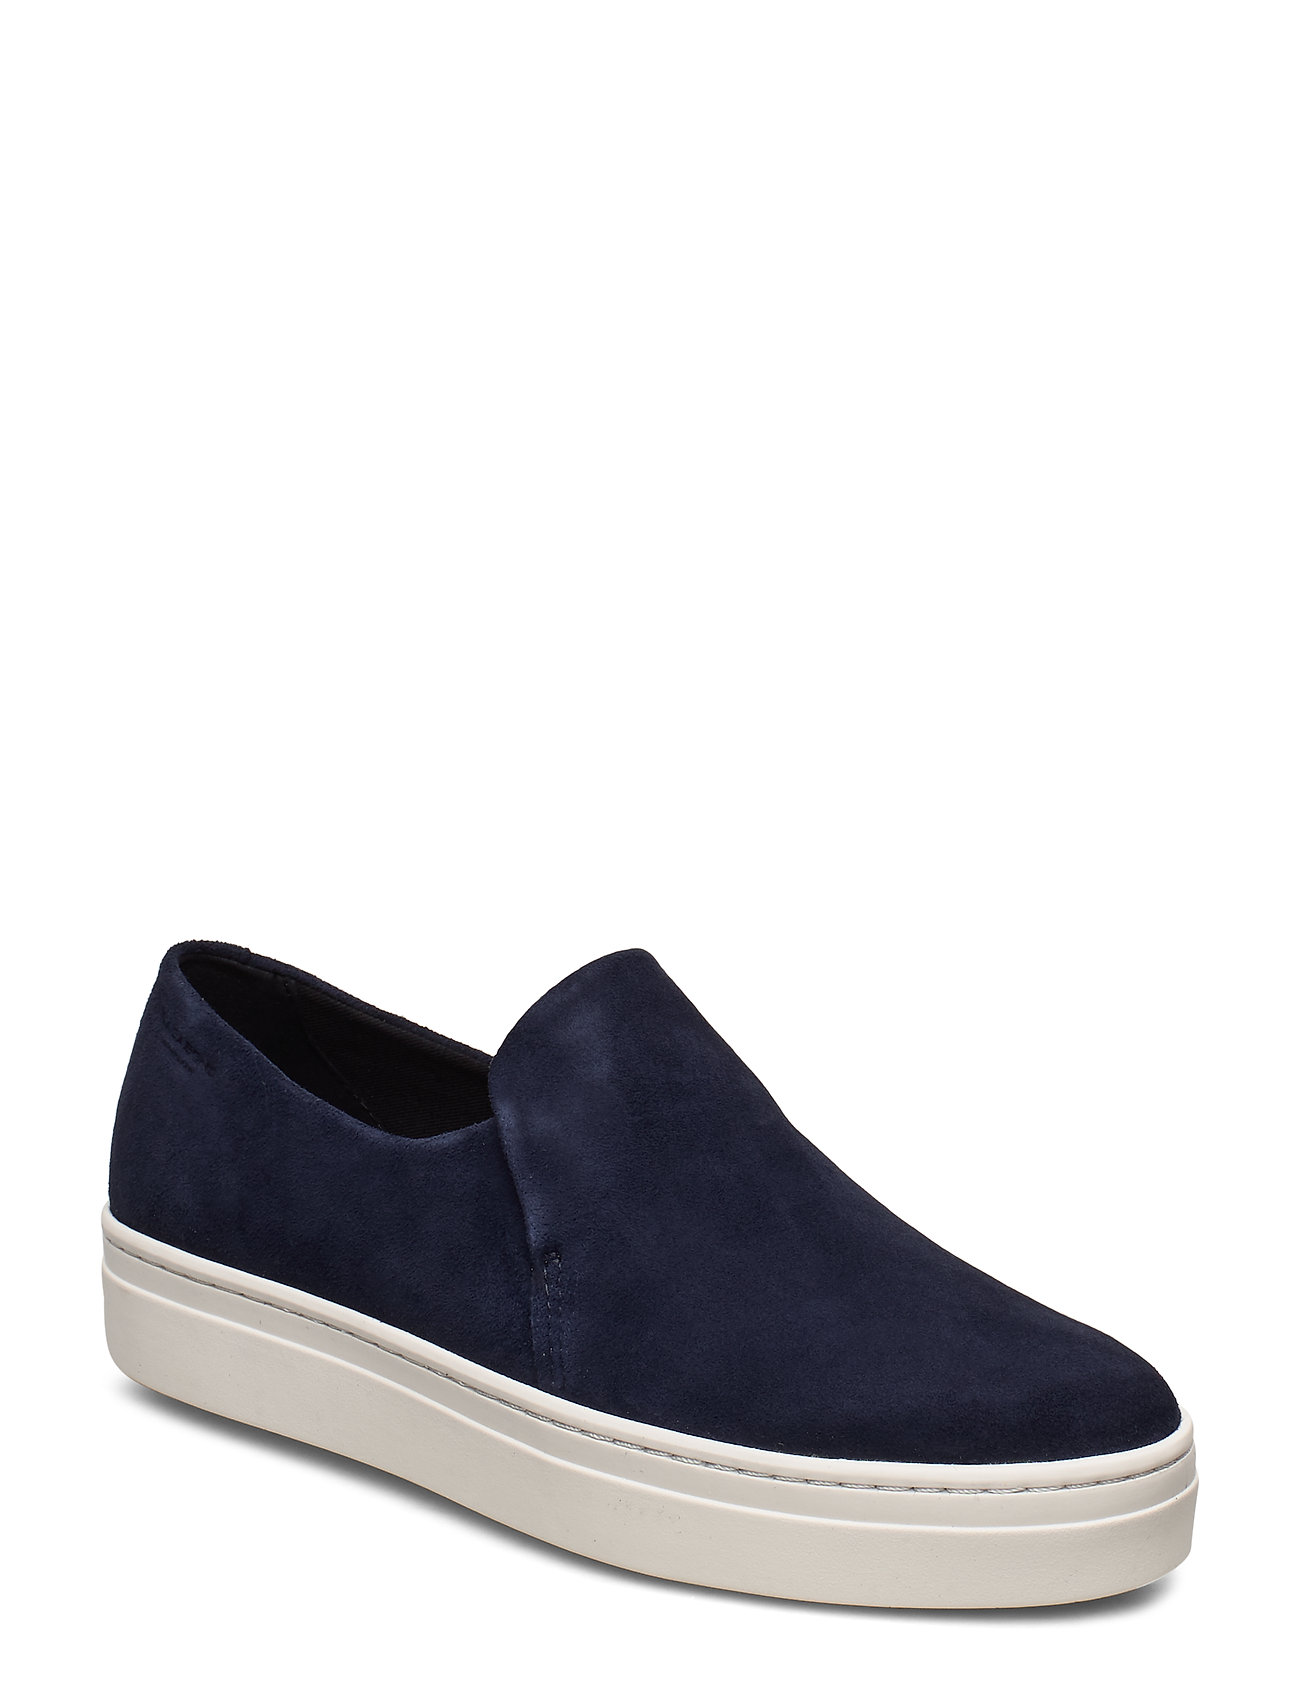 Image of Camille Sneakers Blå VAGABOND (3346637739)